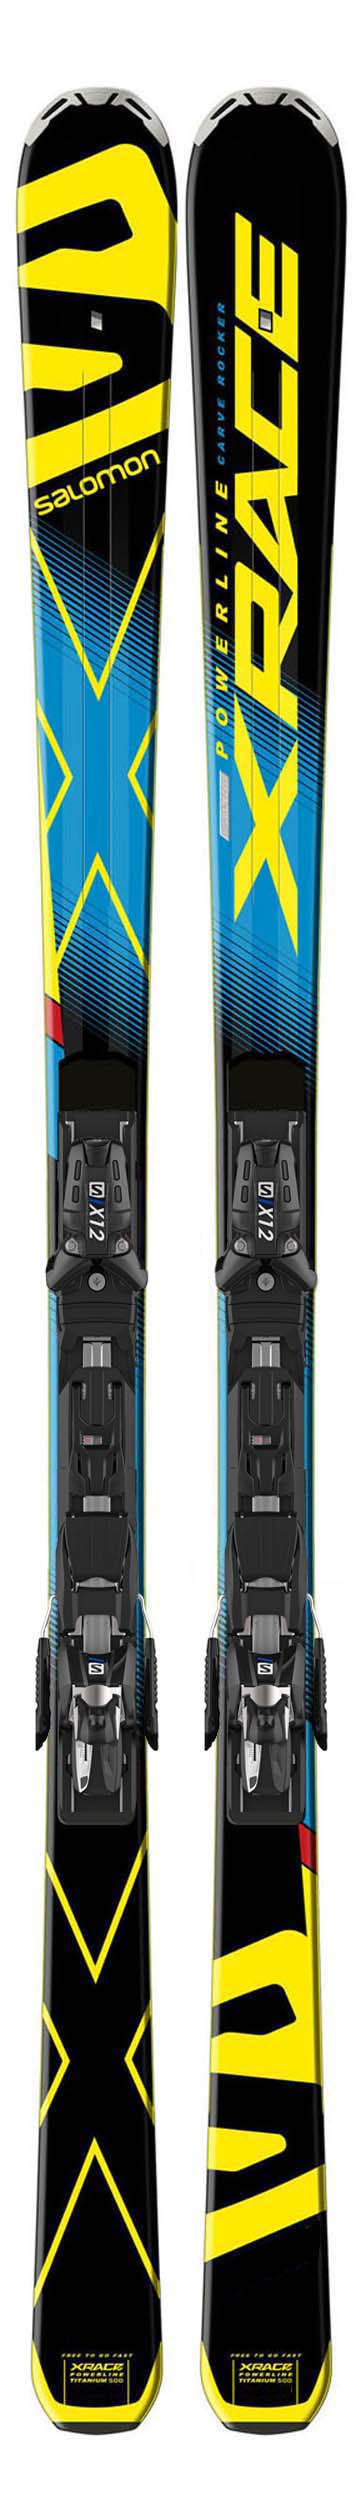 Salomon 2016 X-Race Skis w/X12 TL Bindings NEW !!  180cm